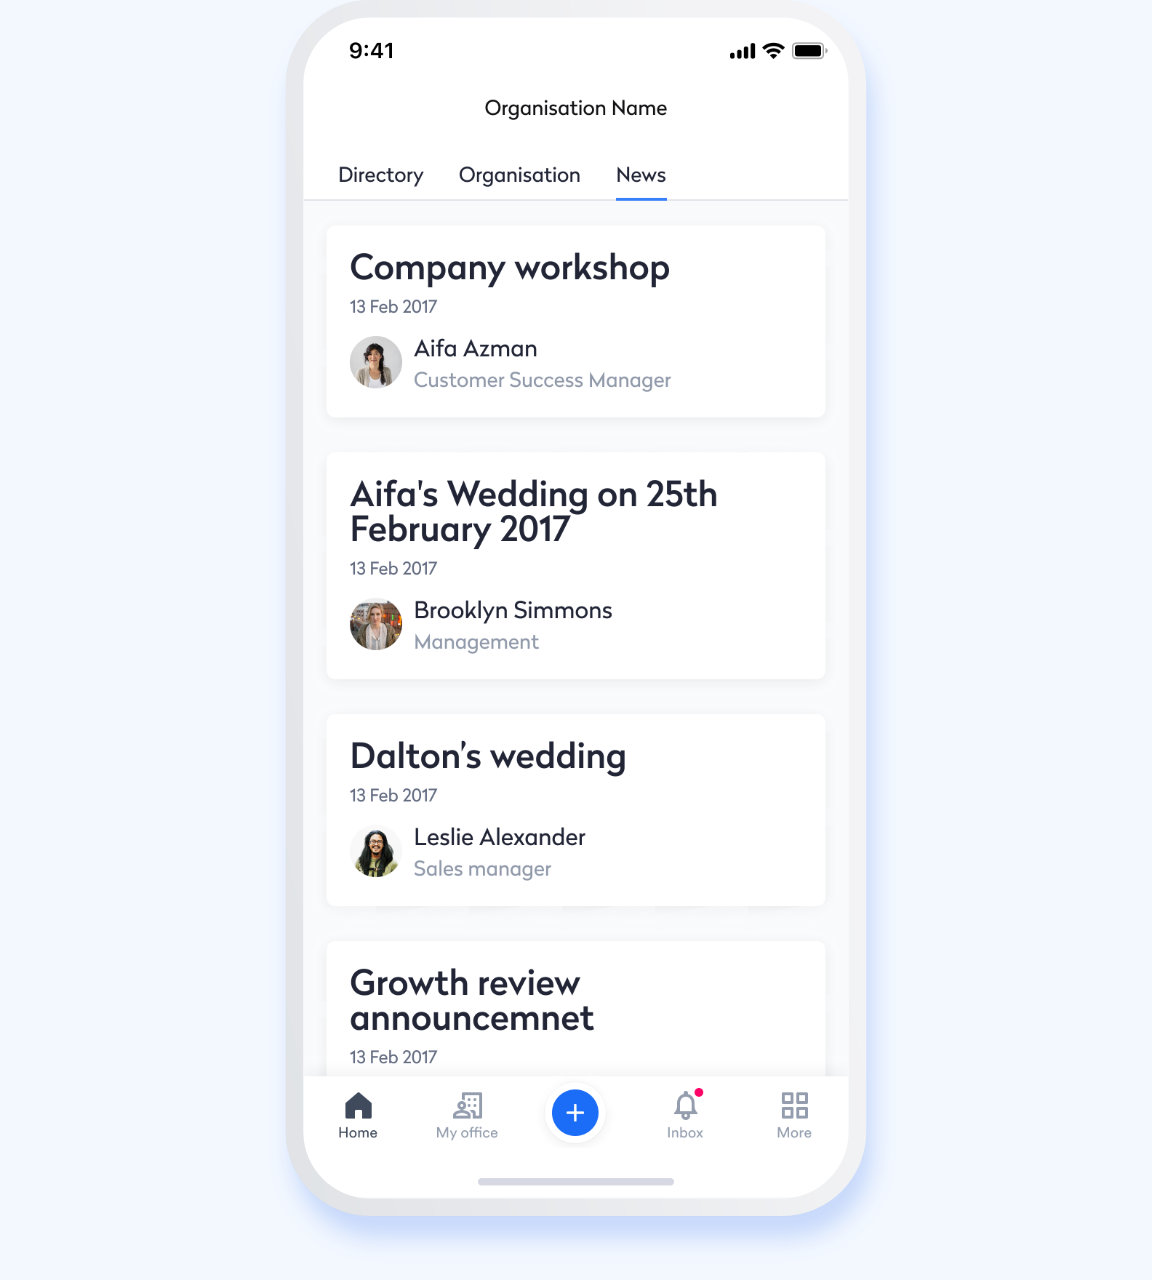 Swingvy mobile HR app view of shared company news stream